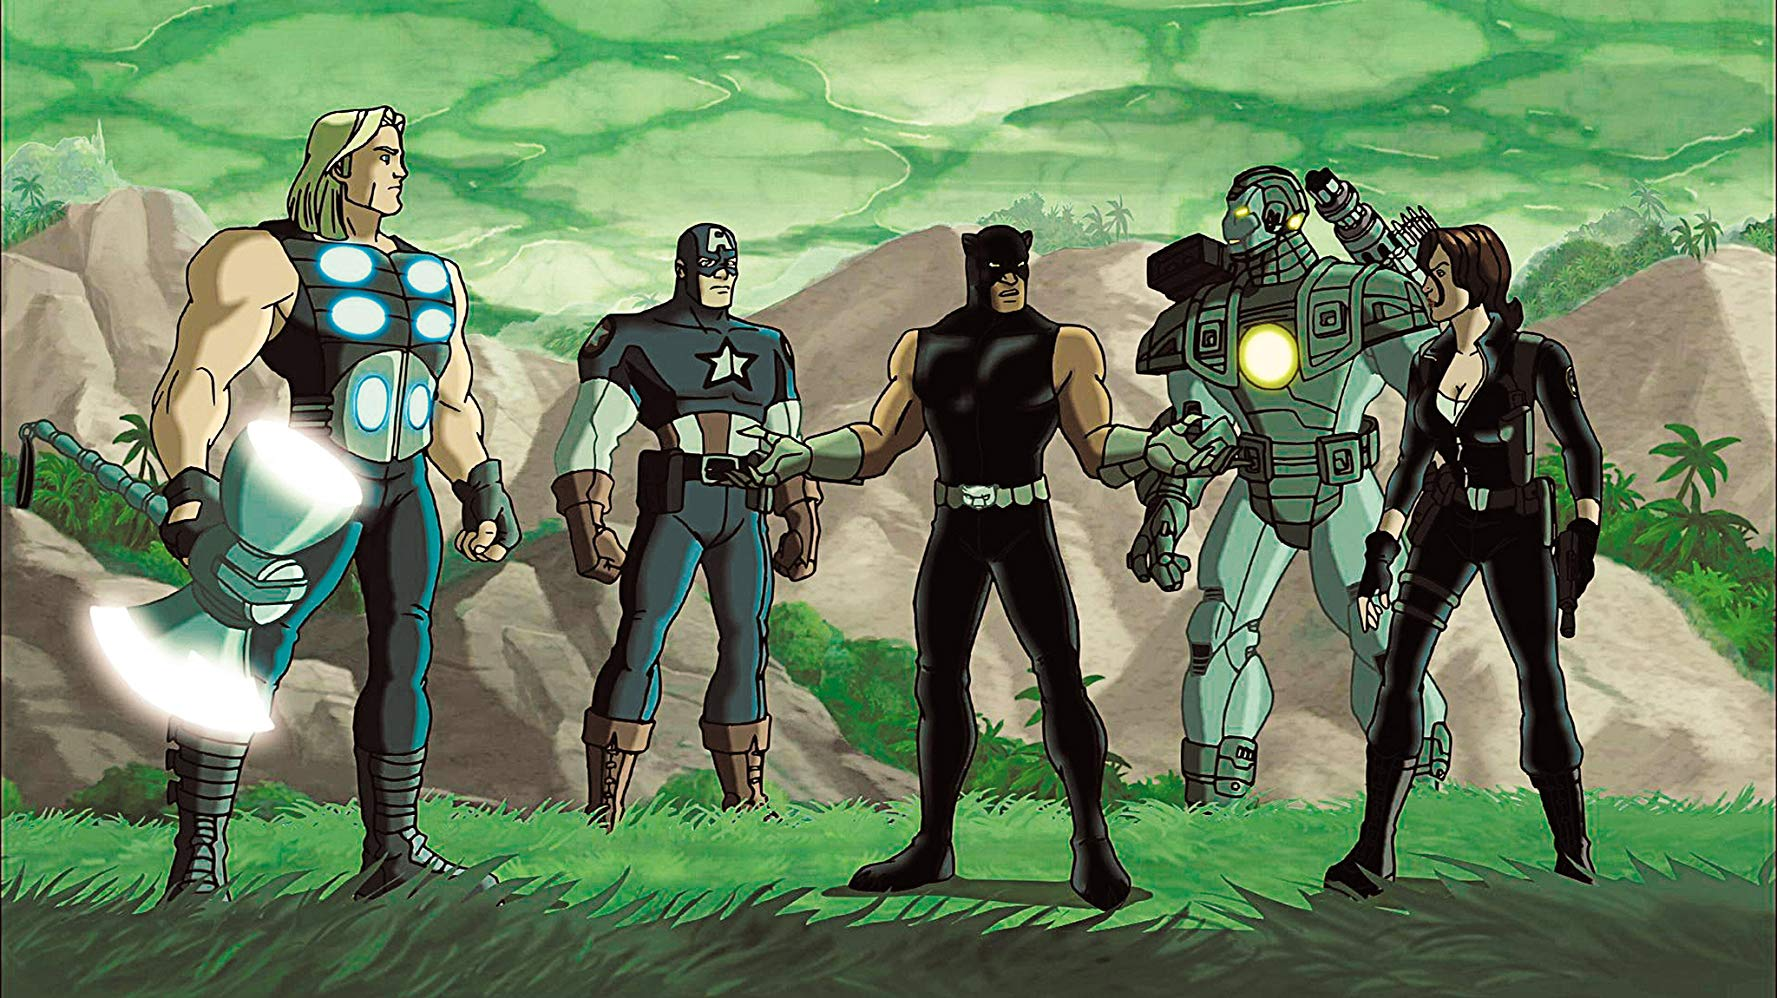 Avengers line-up - (l to r) Thor, Captain America, Black Panther, Iron Man and Black Widow in Ultimate Avengers II (2006)